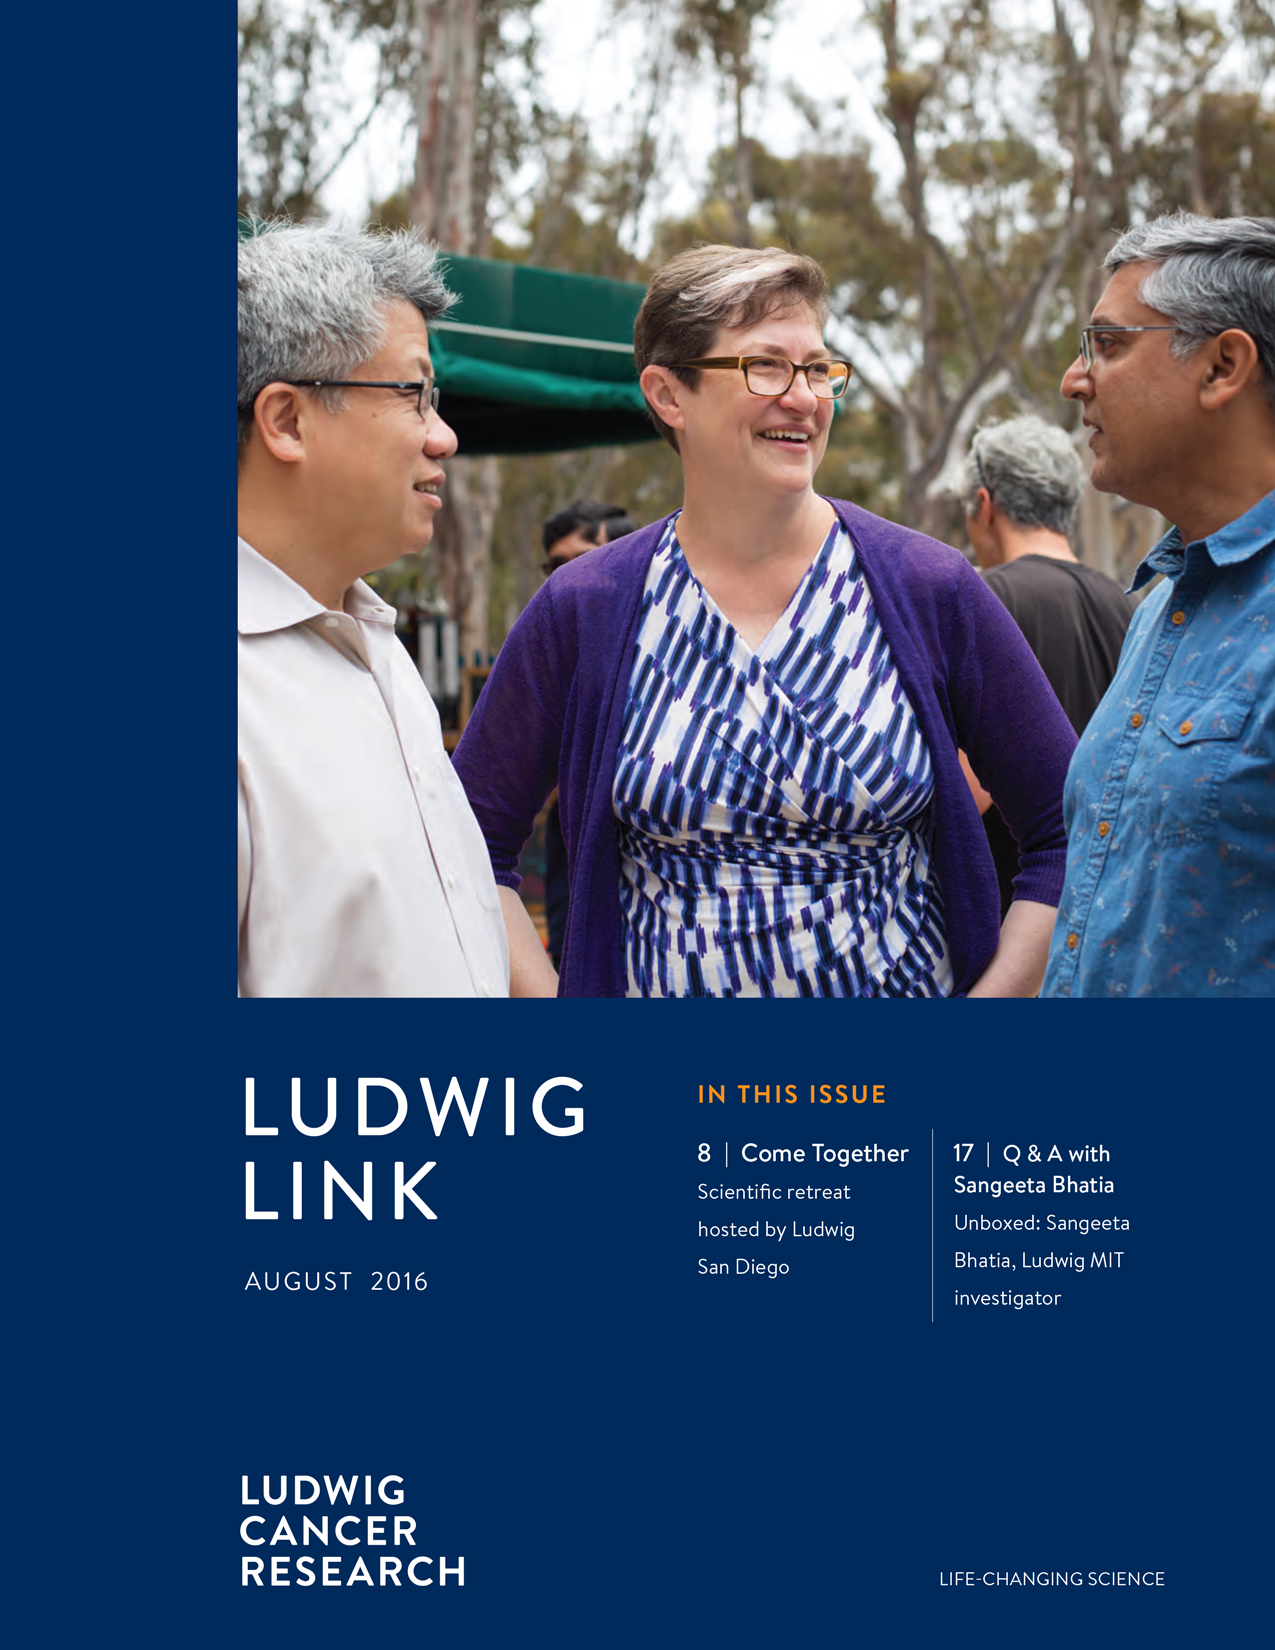 Ludwig Link August 2016 cover